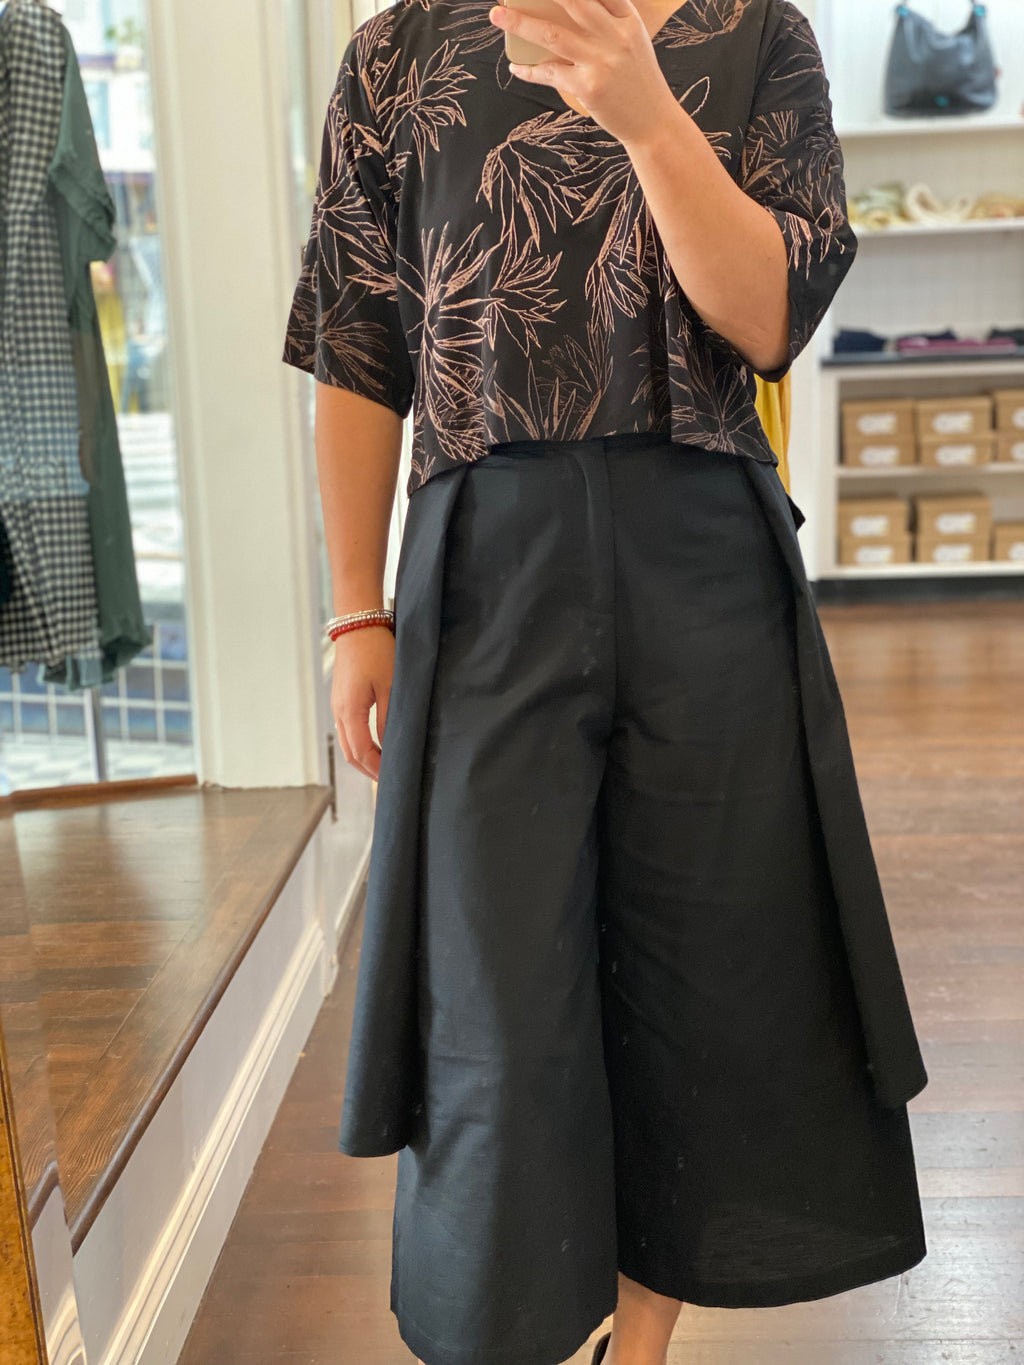 MINU Black Skirt Pant 100% linen